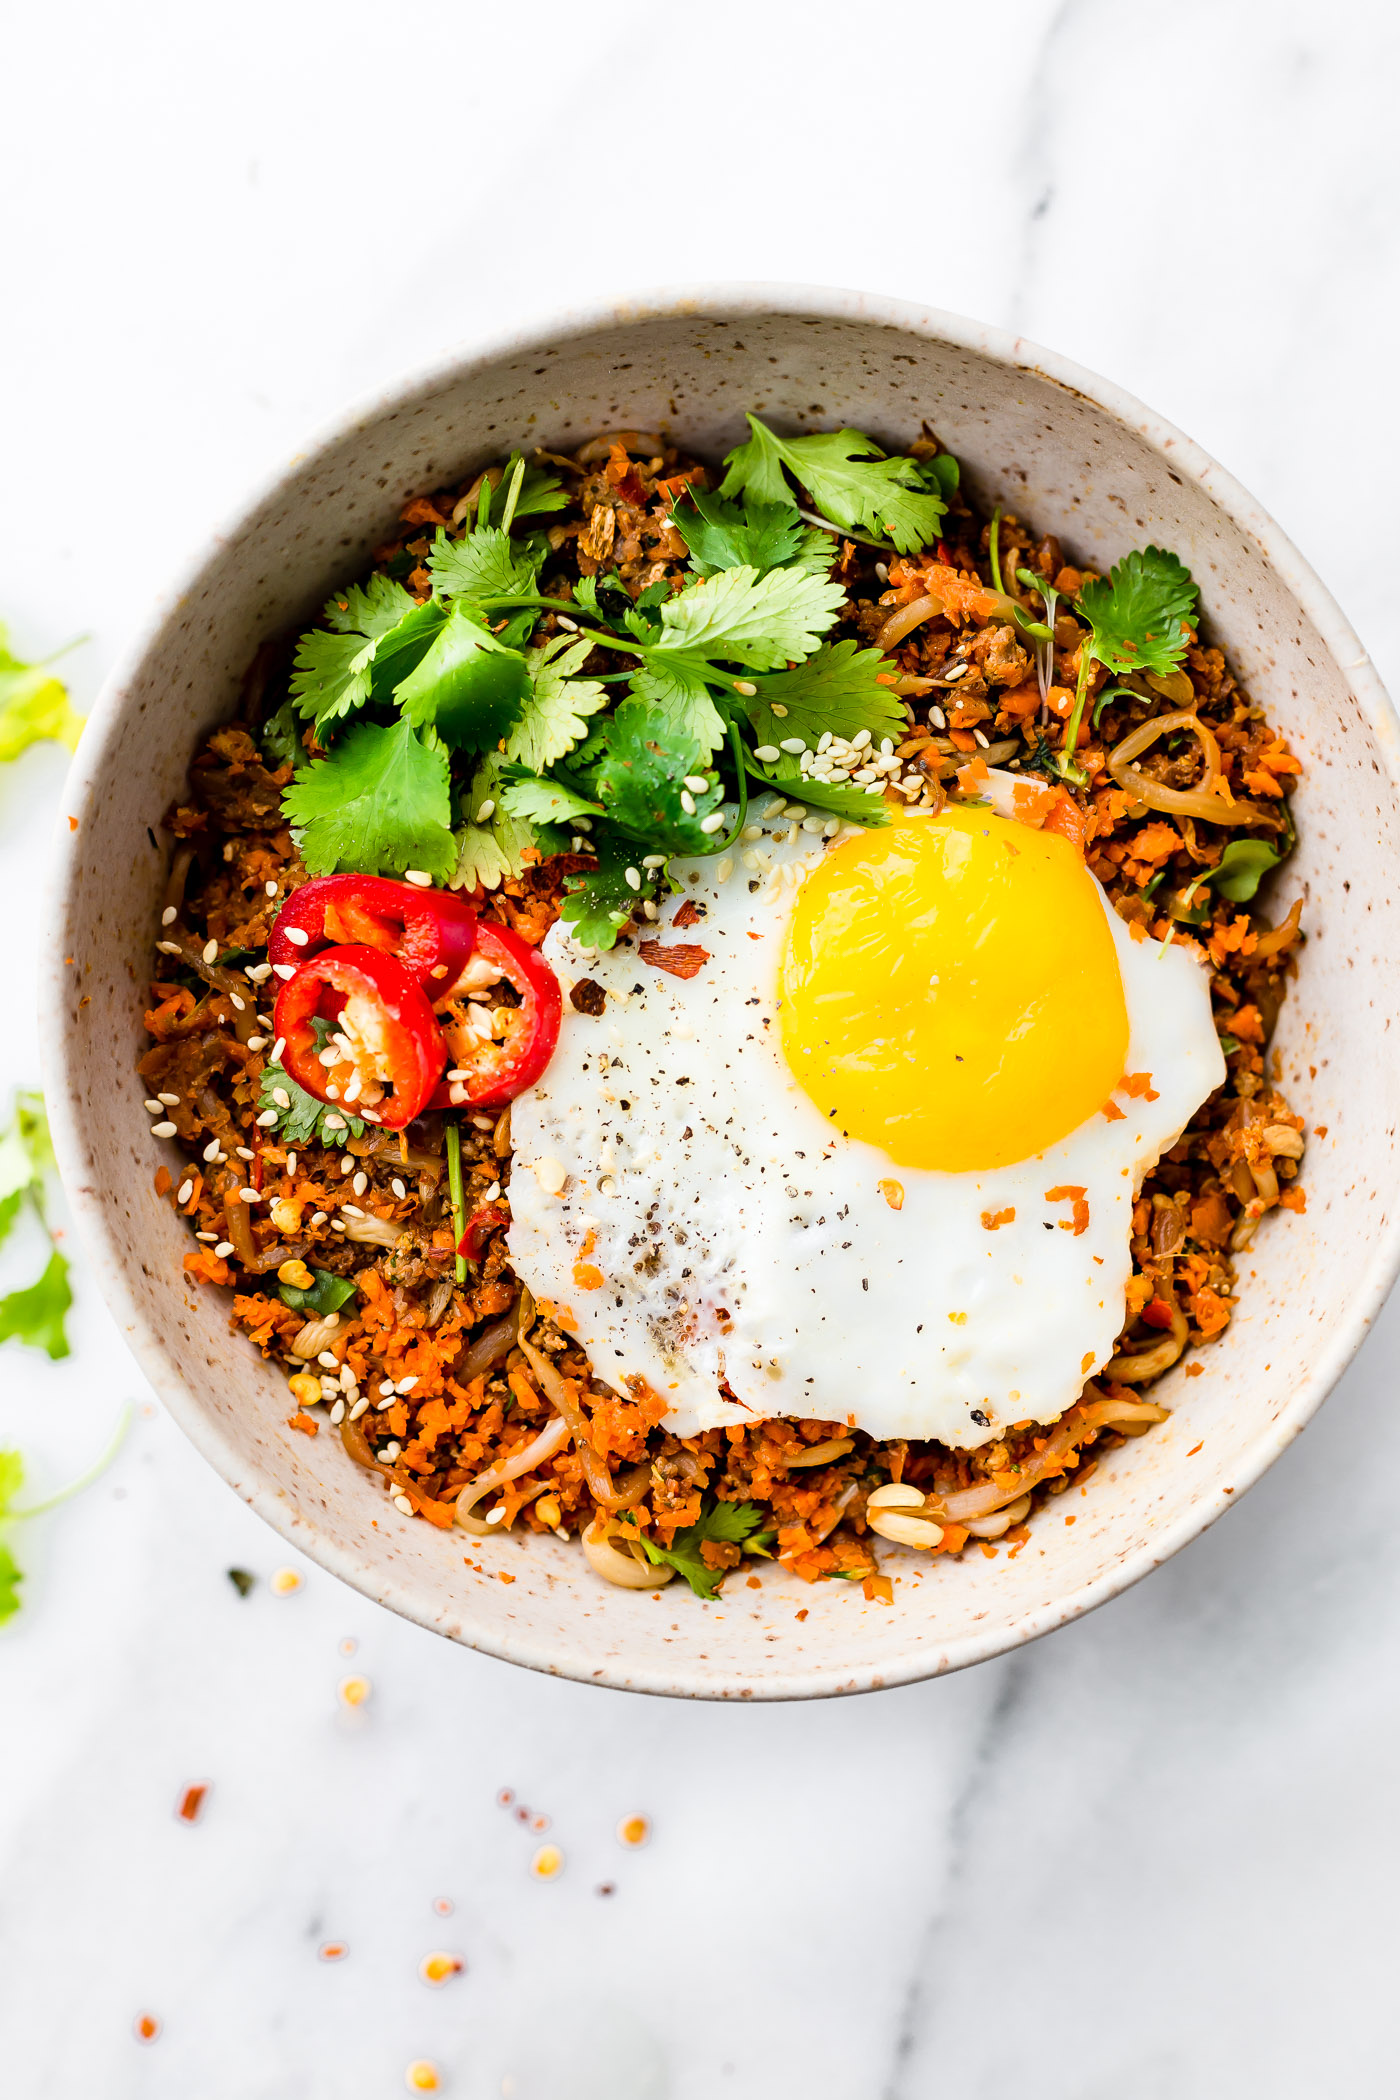 Carrot Rice Breakfast Nasi Goreng {Paleo Friendly}